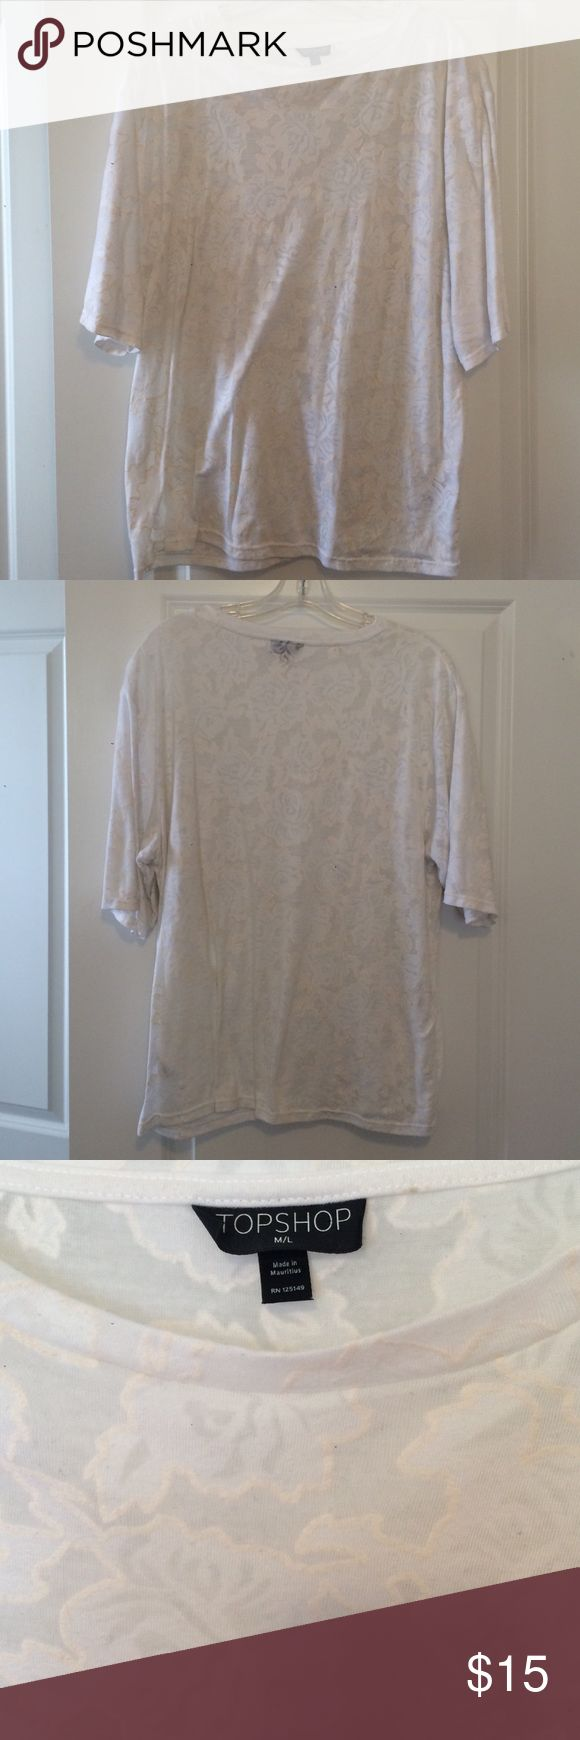 EUC White Lace print Topshop T Shirt EUC White Lace print Topshop T Shirt. T shirt is mostly see through, but so cute with a bralette underneath! Size M/L Topshop Tops Tees - Short Sleeve